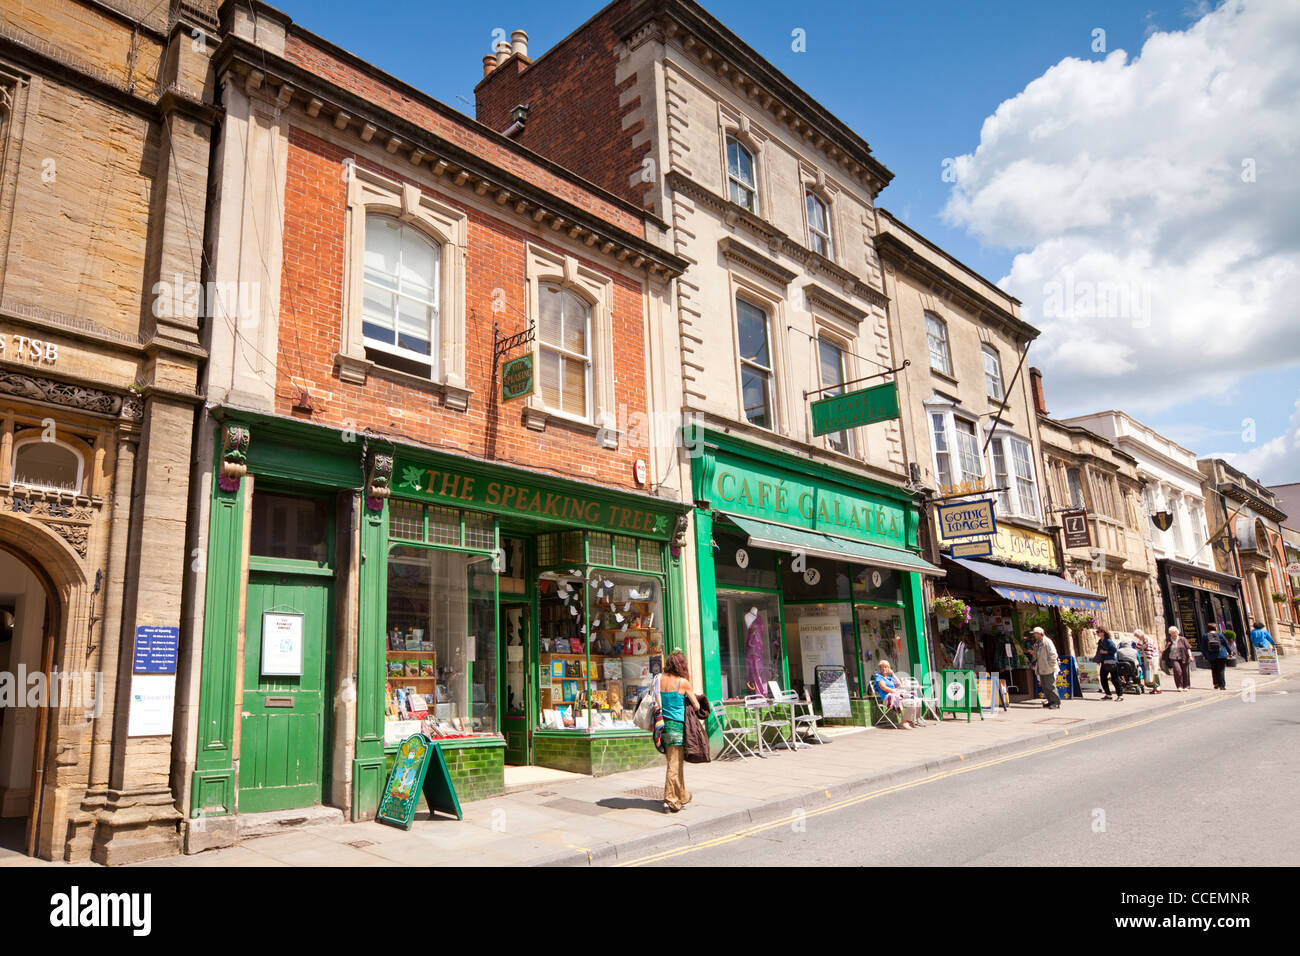 Shops and cafes and people shopping in High Street, Glastonbury, Somerset, England. - Stock Image